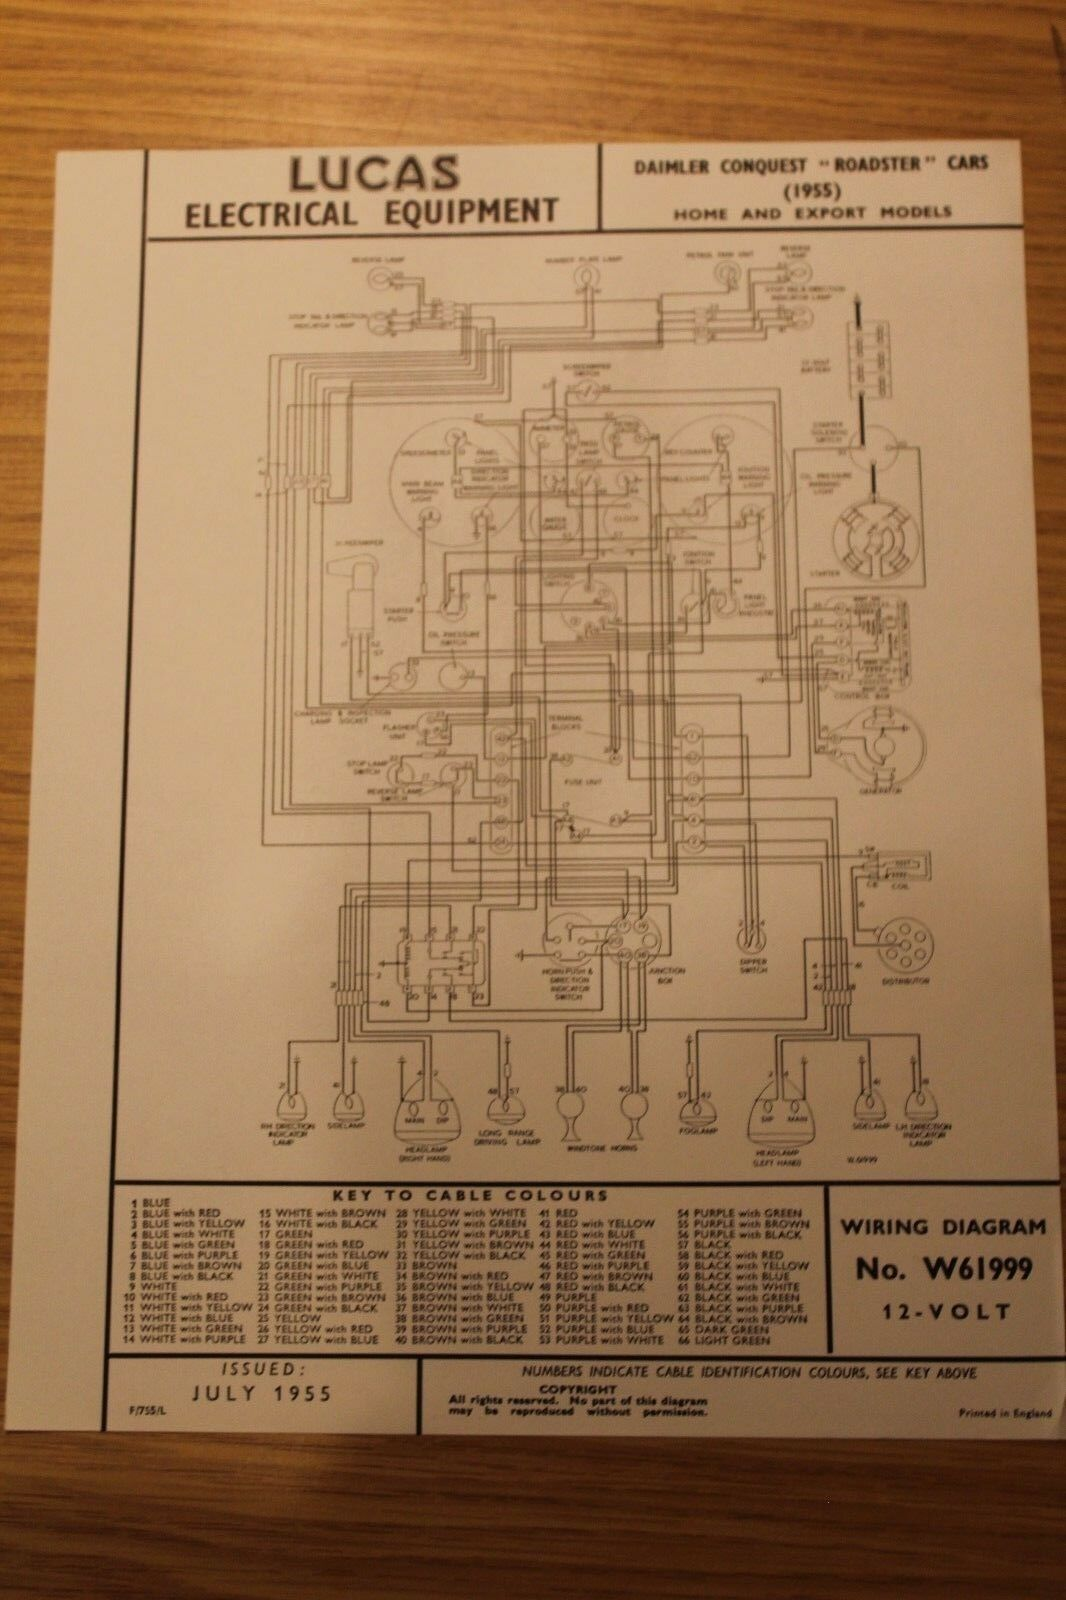 Daimler Wiring Diagram | Repair Manual on